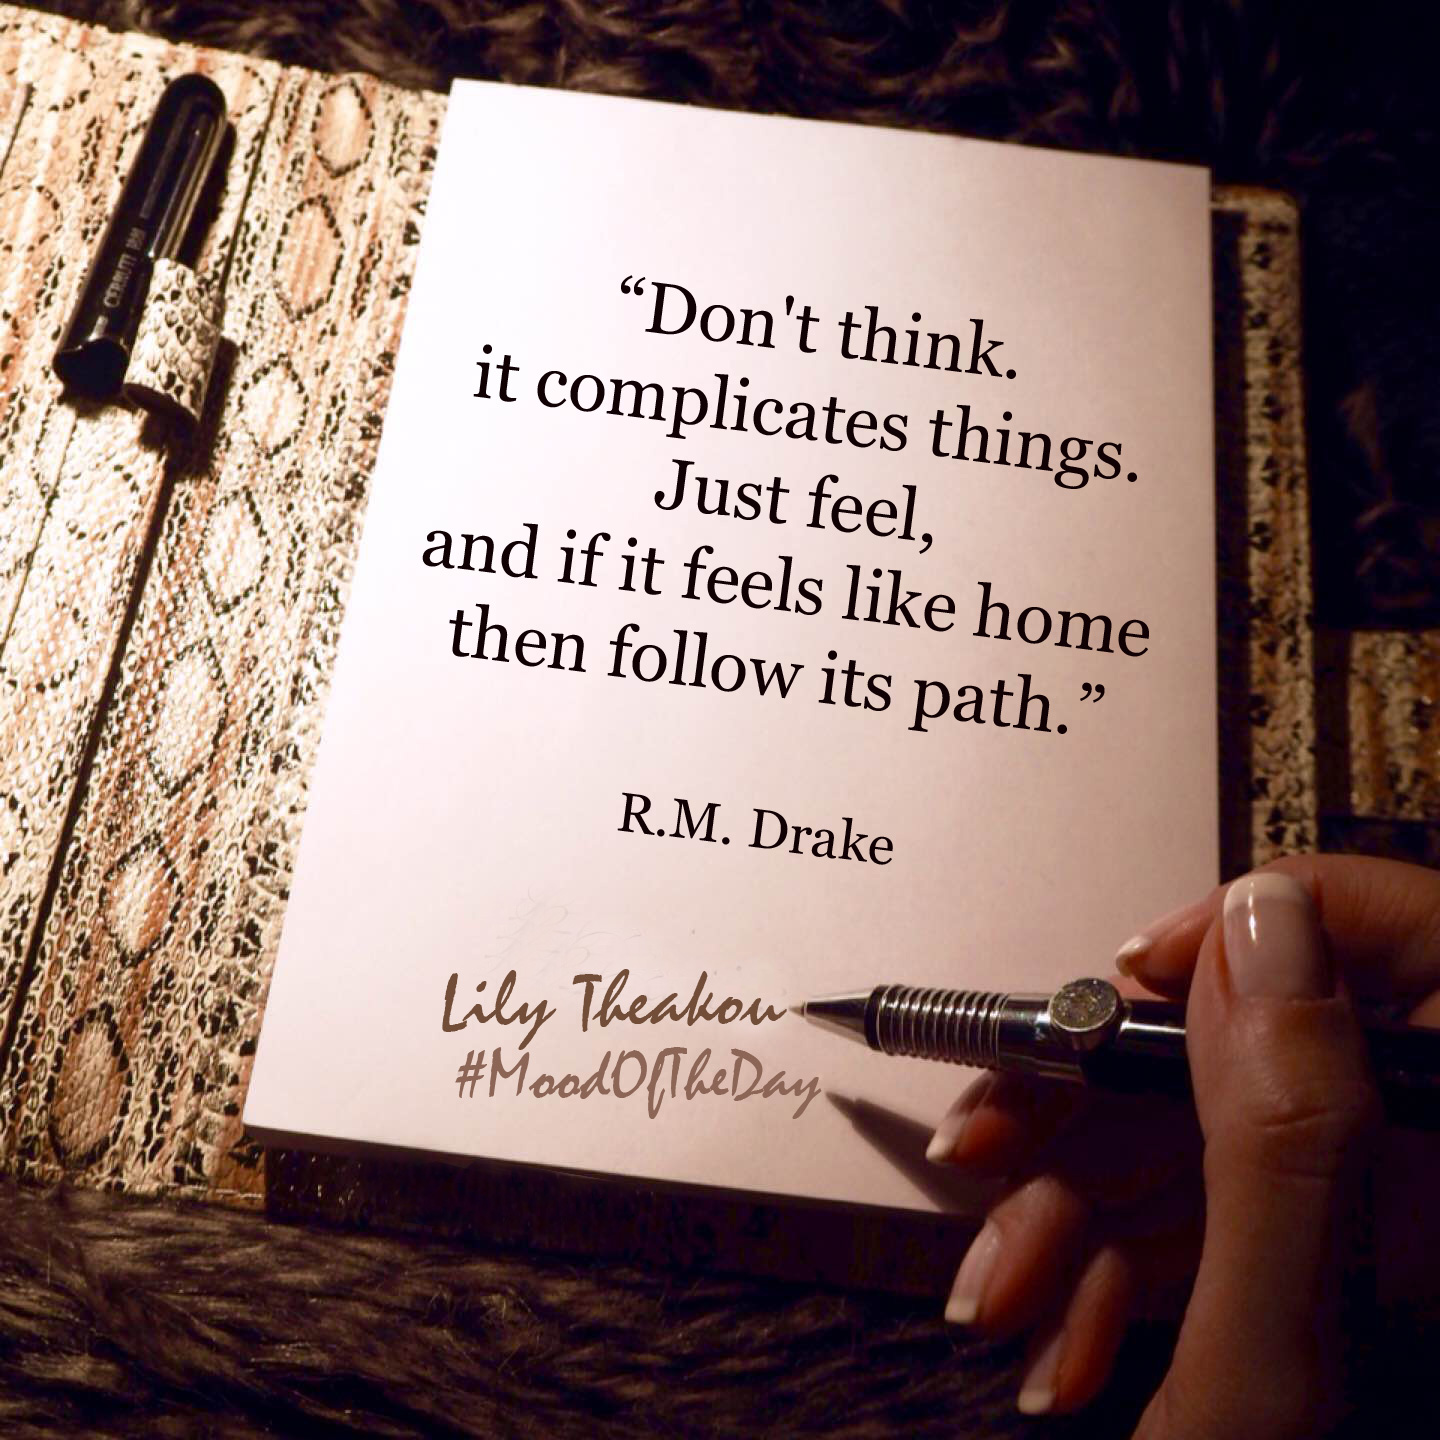 Don't think. It complicates things. Just feel, and if it feels like home then follow its path. - Quote